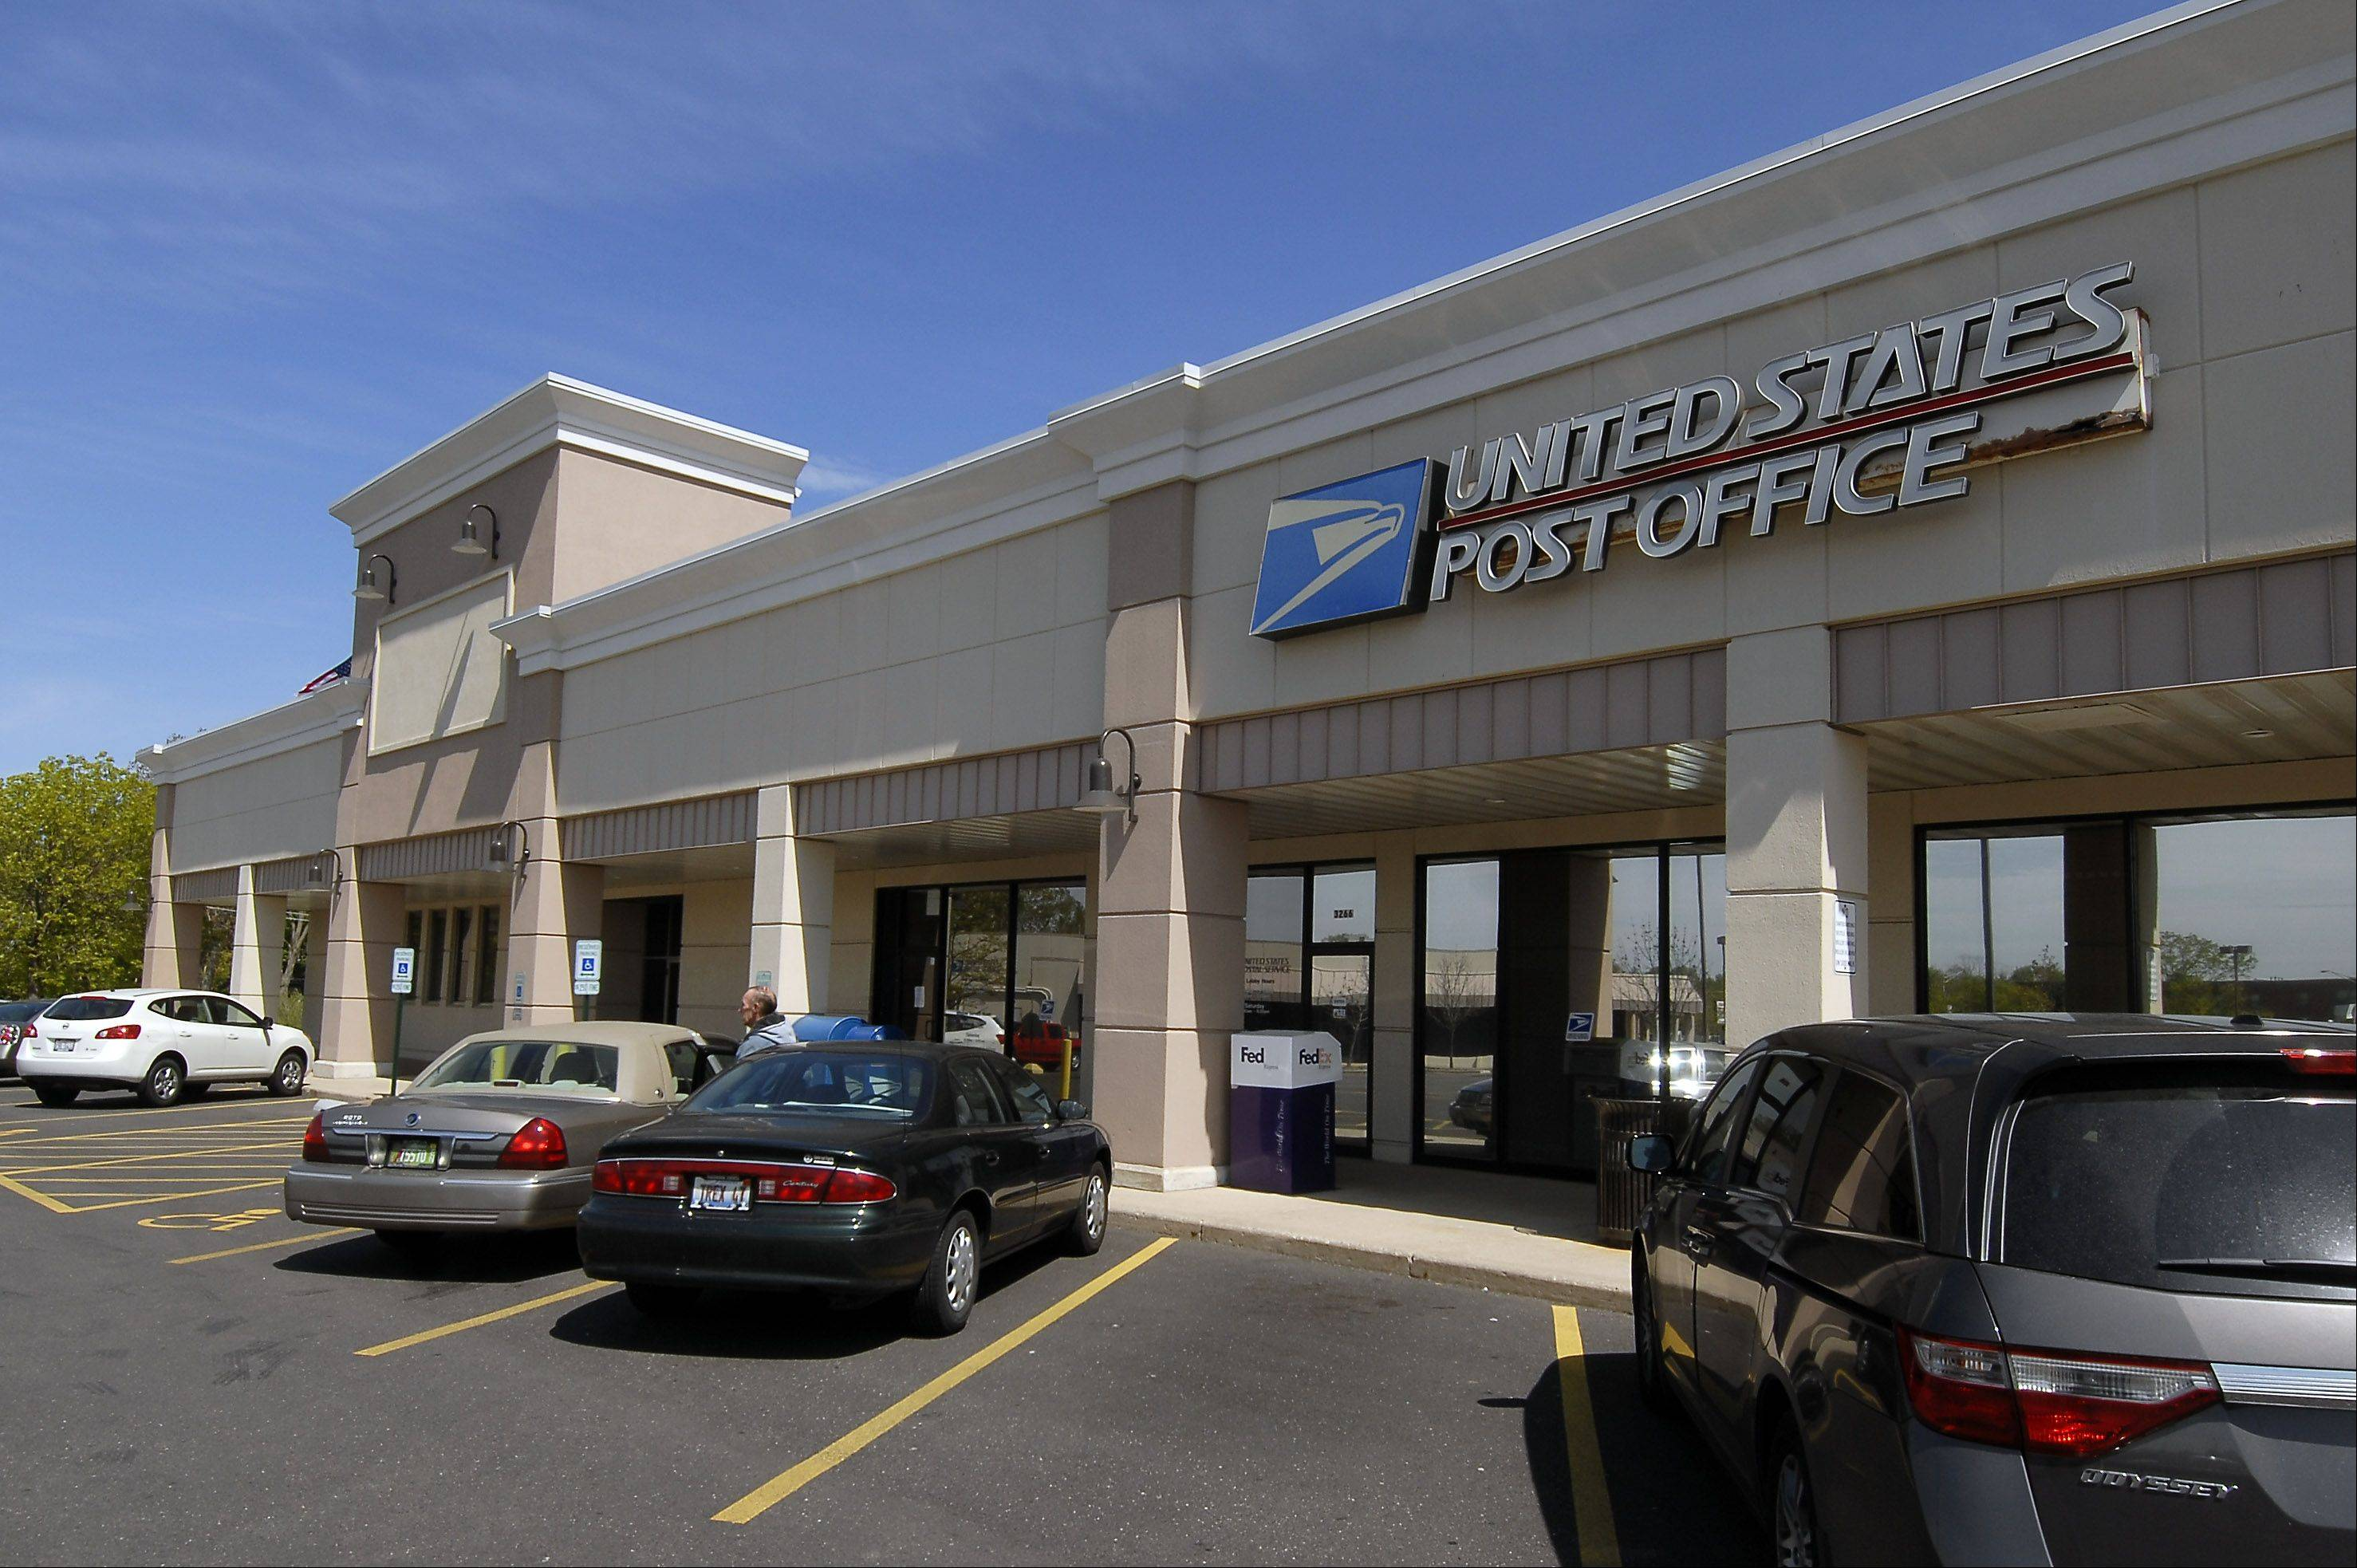 The post office in Rolling Meadows closed its doors for good in May 2012, prompting objections from a handful of city residents. Next week they'll get a chance to address their concerns to postal service representatives.